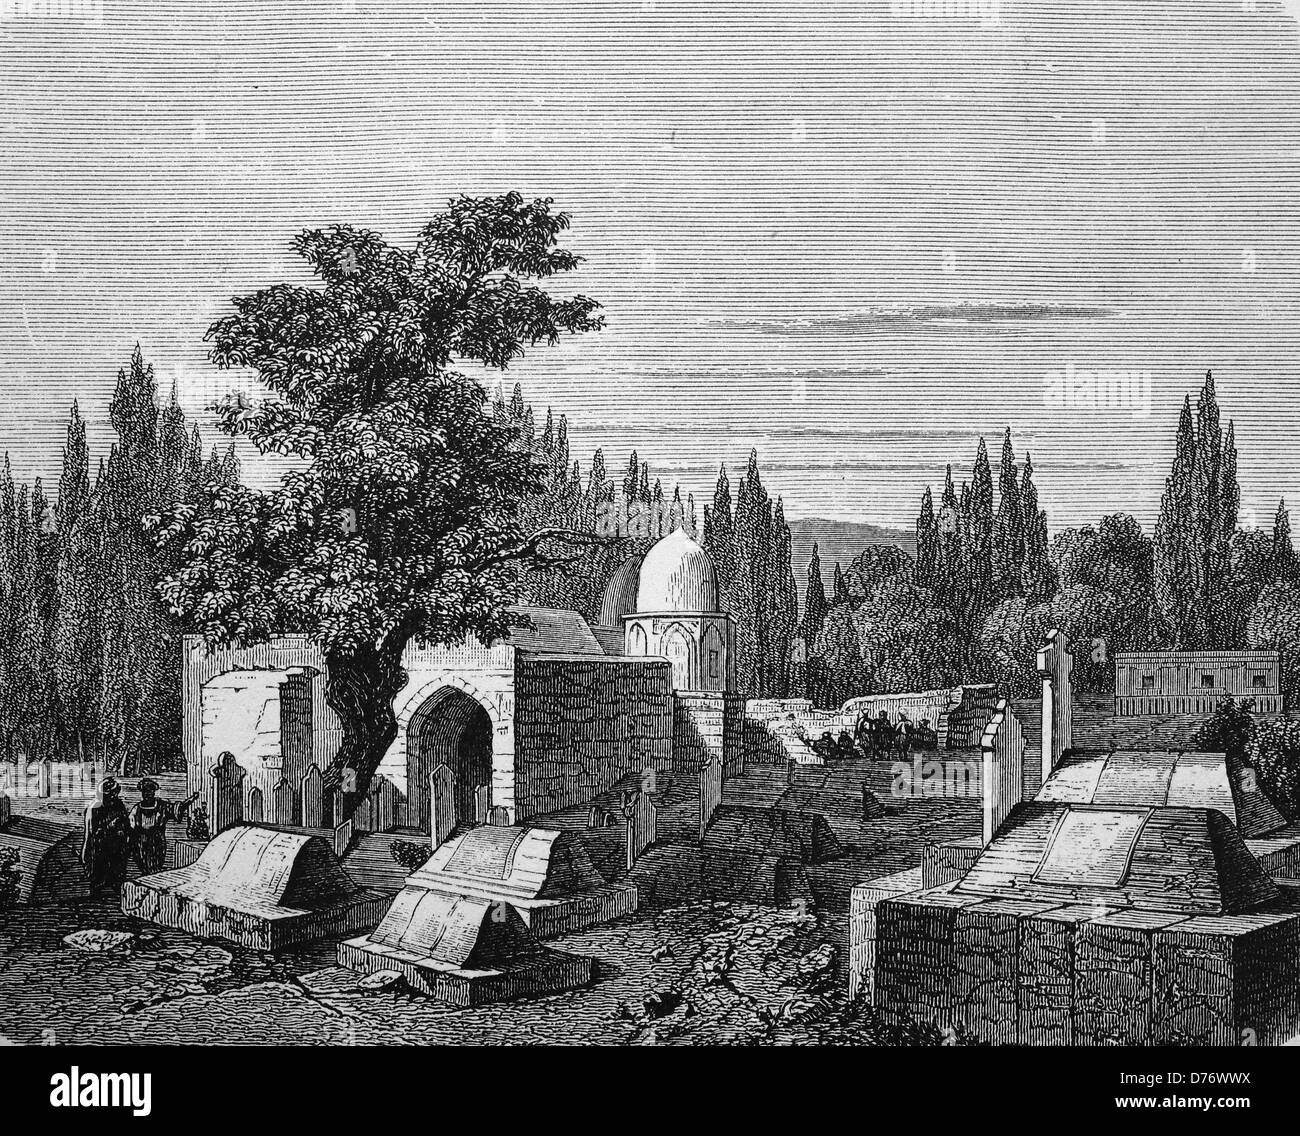 Caliph's tomb in Damascus, Syria, historical woodcut, 1870 - Stock Image